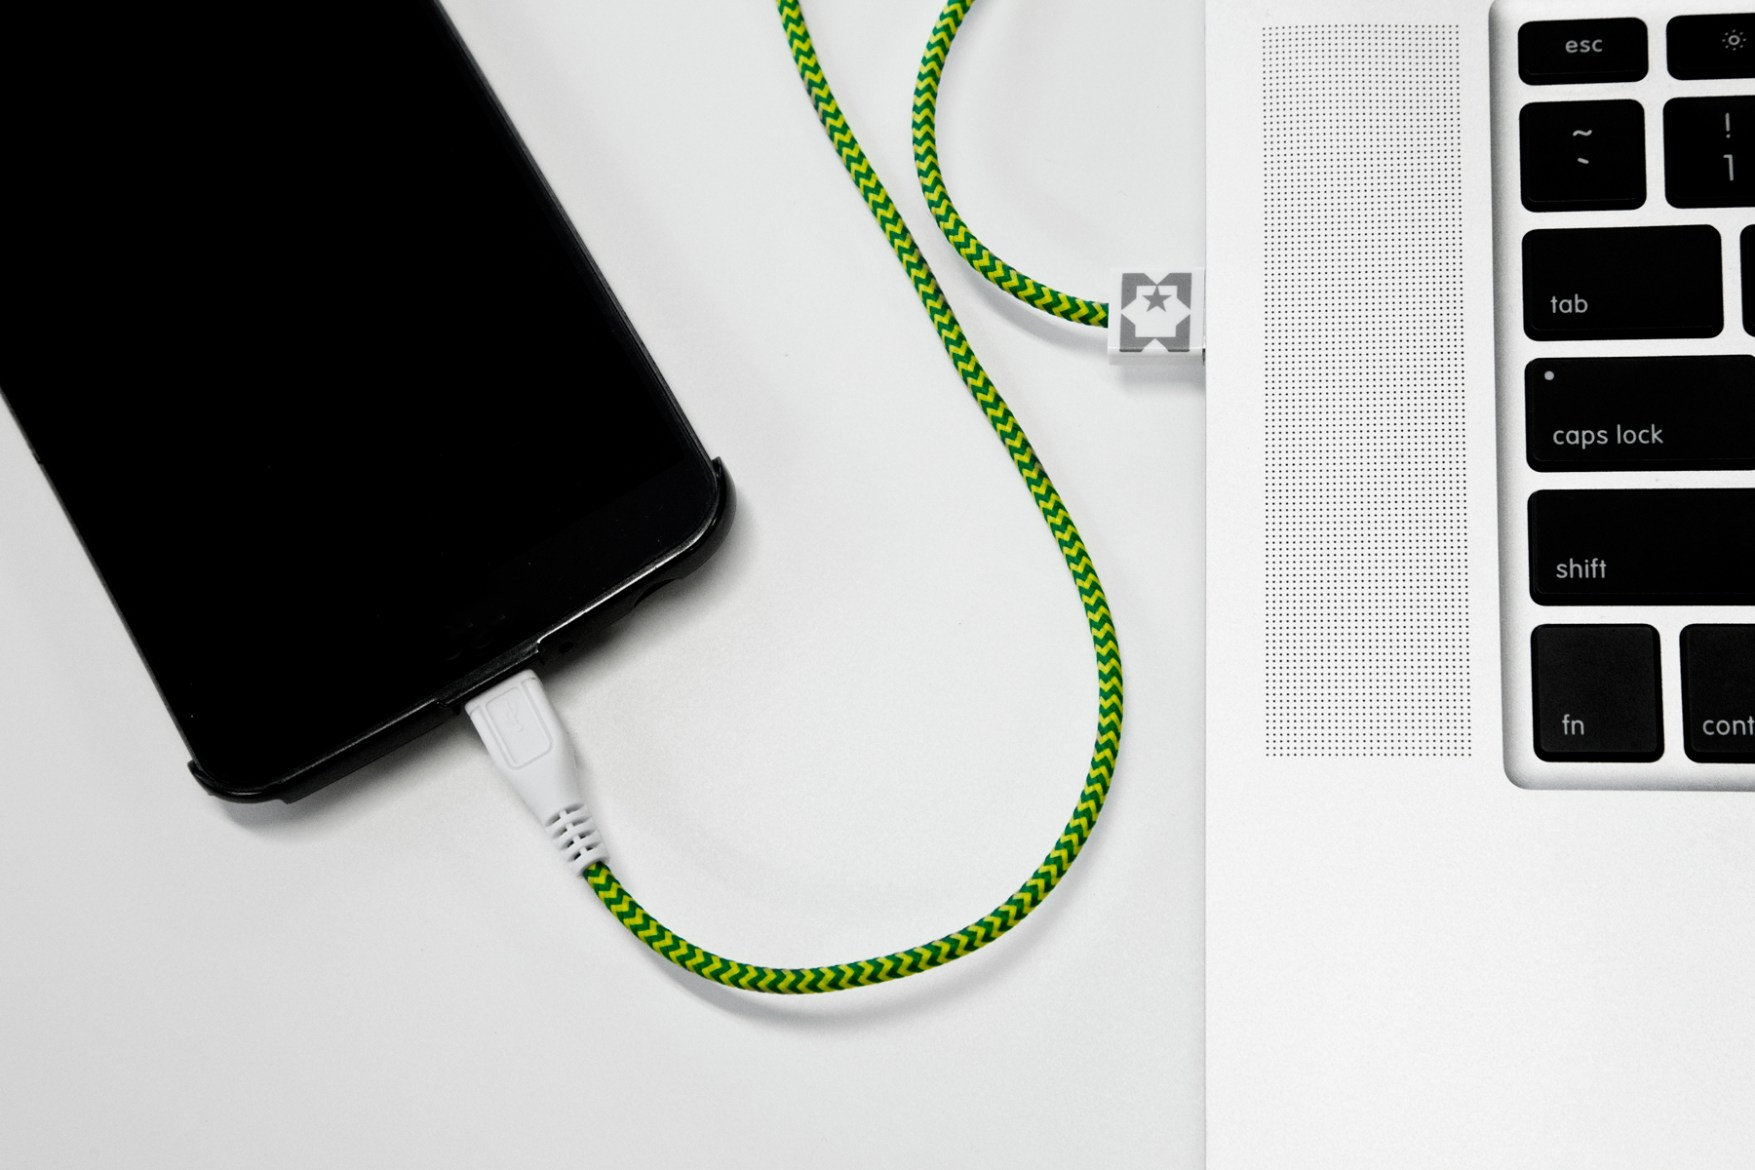 Eastern Collective 2014 Spring/Summer iPhone Cables